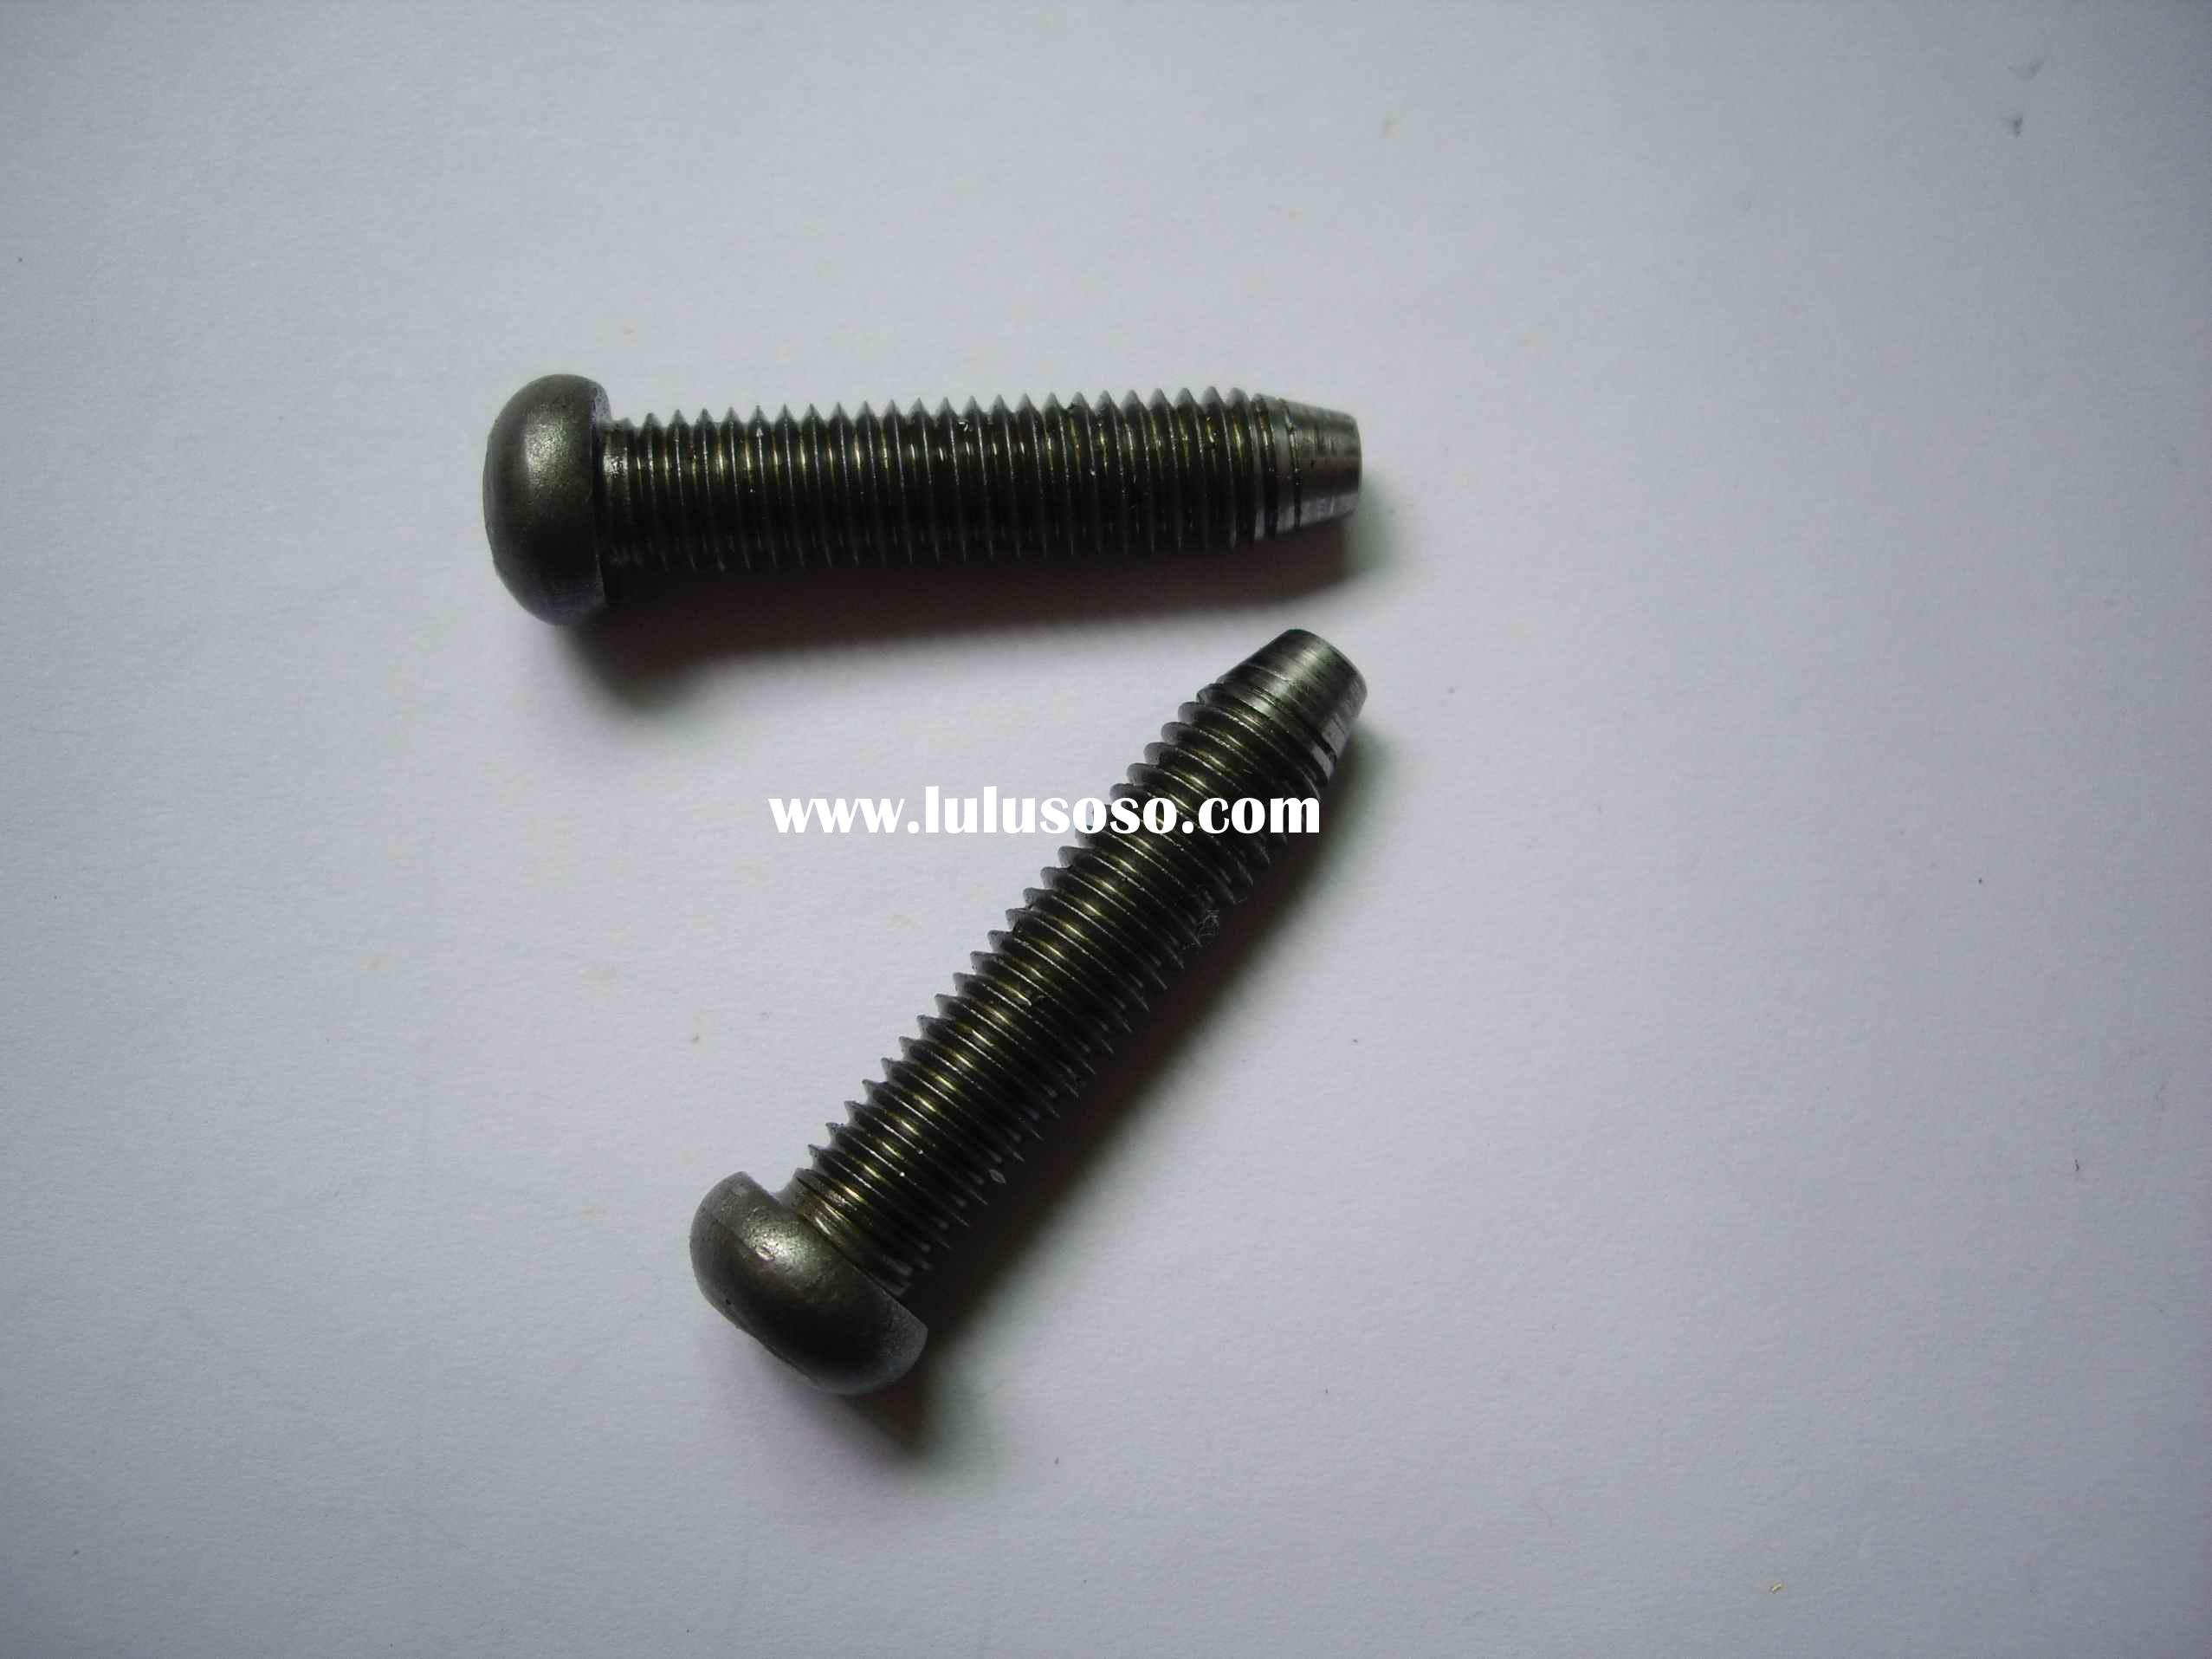 drywall screw drywall screw manufacturers in page 1. Black Bedroom Furniture Sets. Home Design Ideas